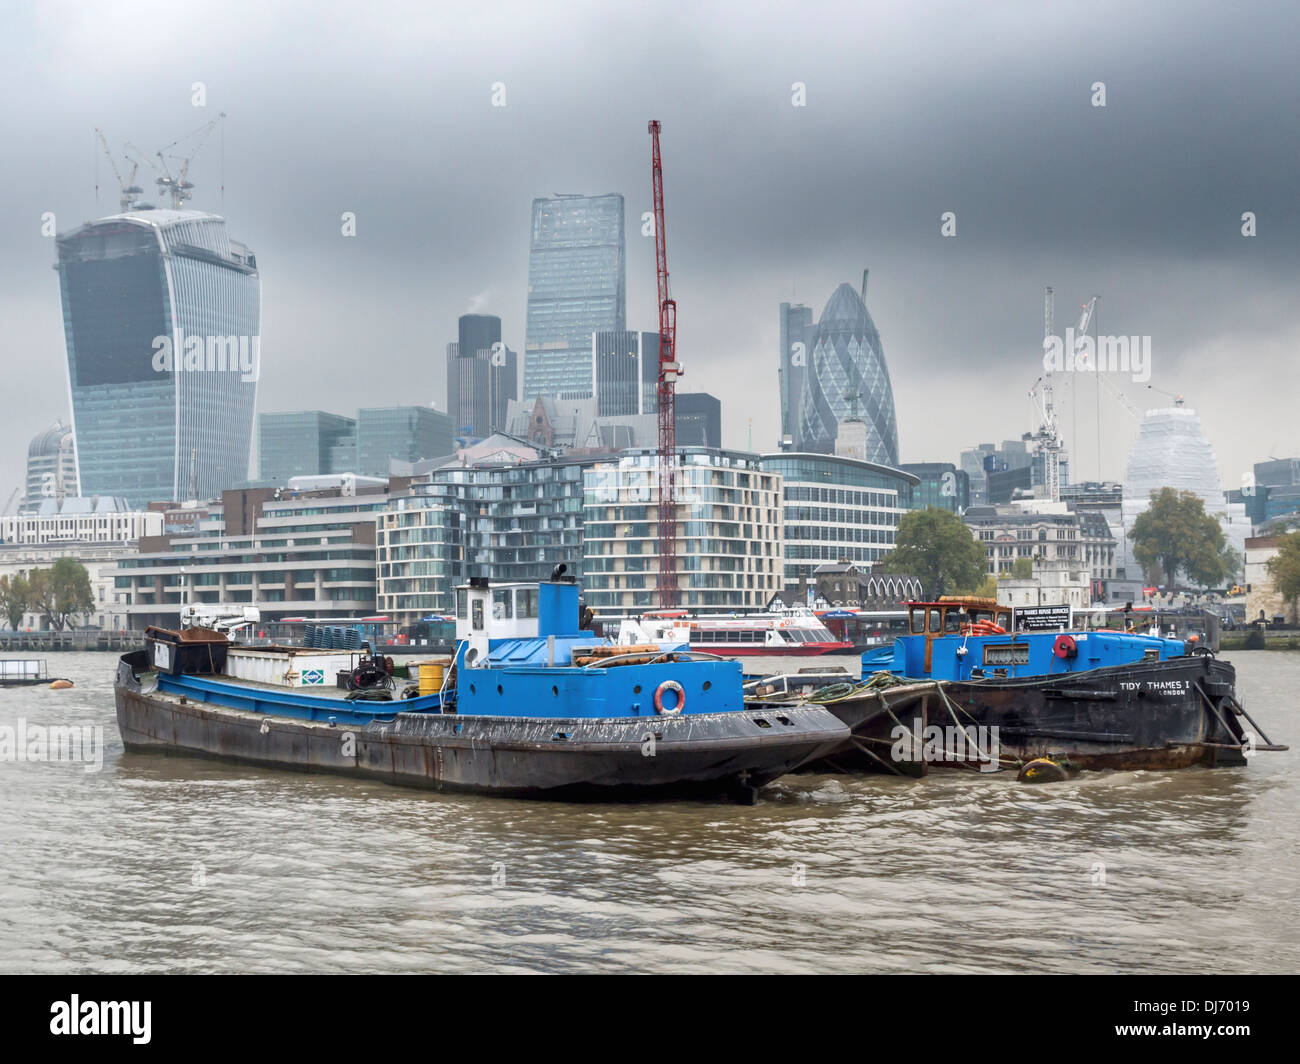 'Tidy Thames' refuse boat in front of modern architecture (nicknamed cucumber and mushroom buildings) of London - Stock Image